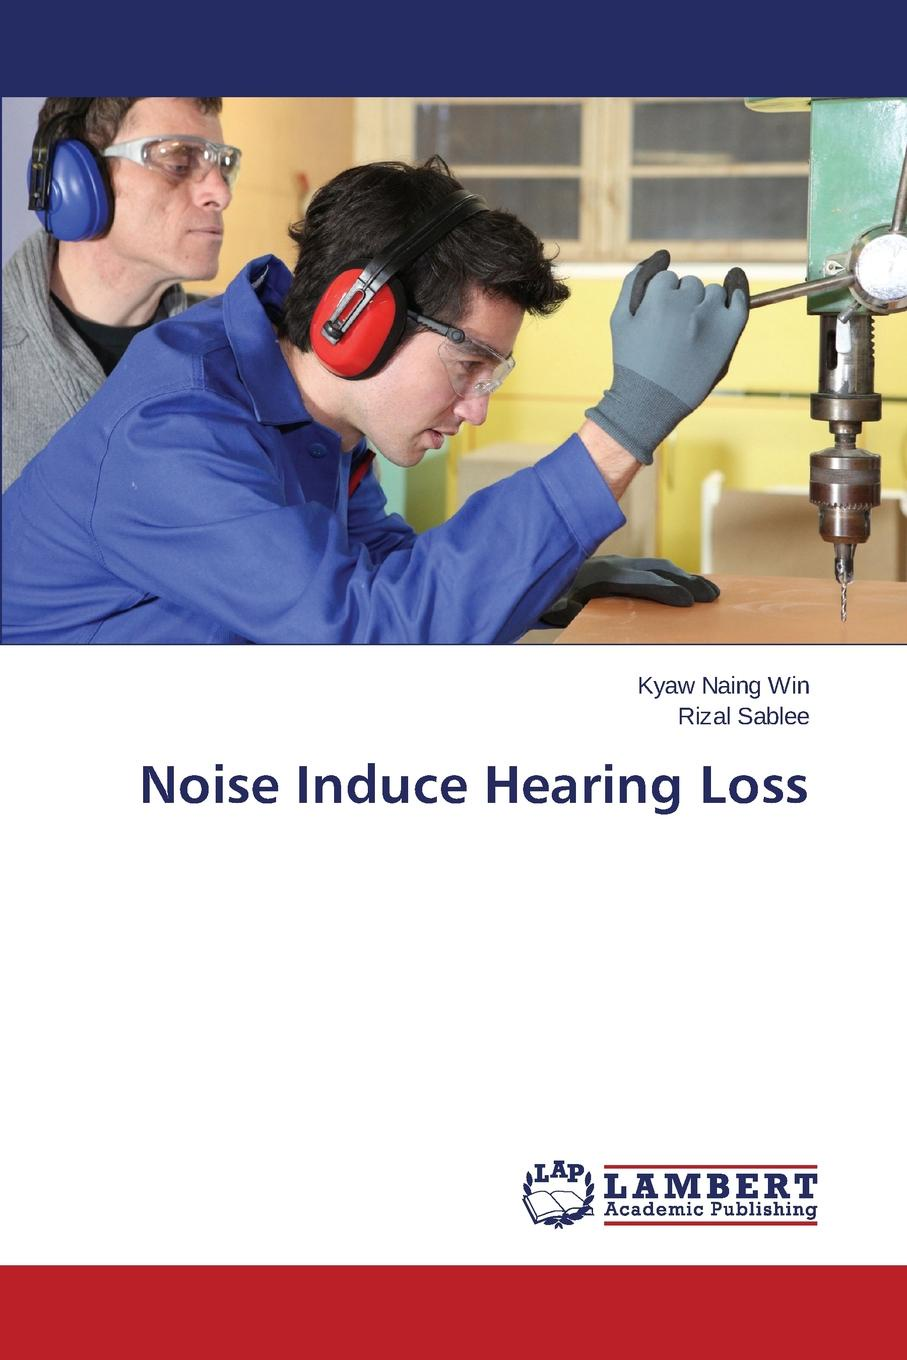 Win Kyaw Naing, Sablee Rizal Noise Induce Hearing Loss cic hearing enhancer hearing aids 6 channel digital programmable digital amplifier s 16a medical ear care listen free shipping